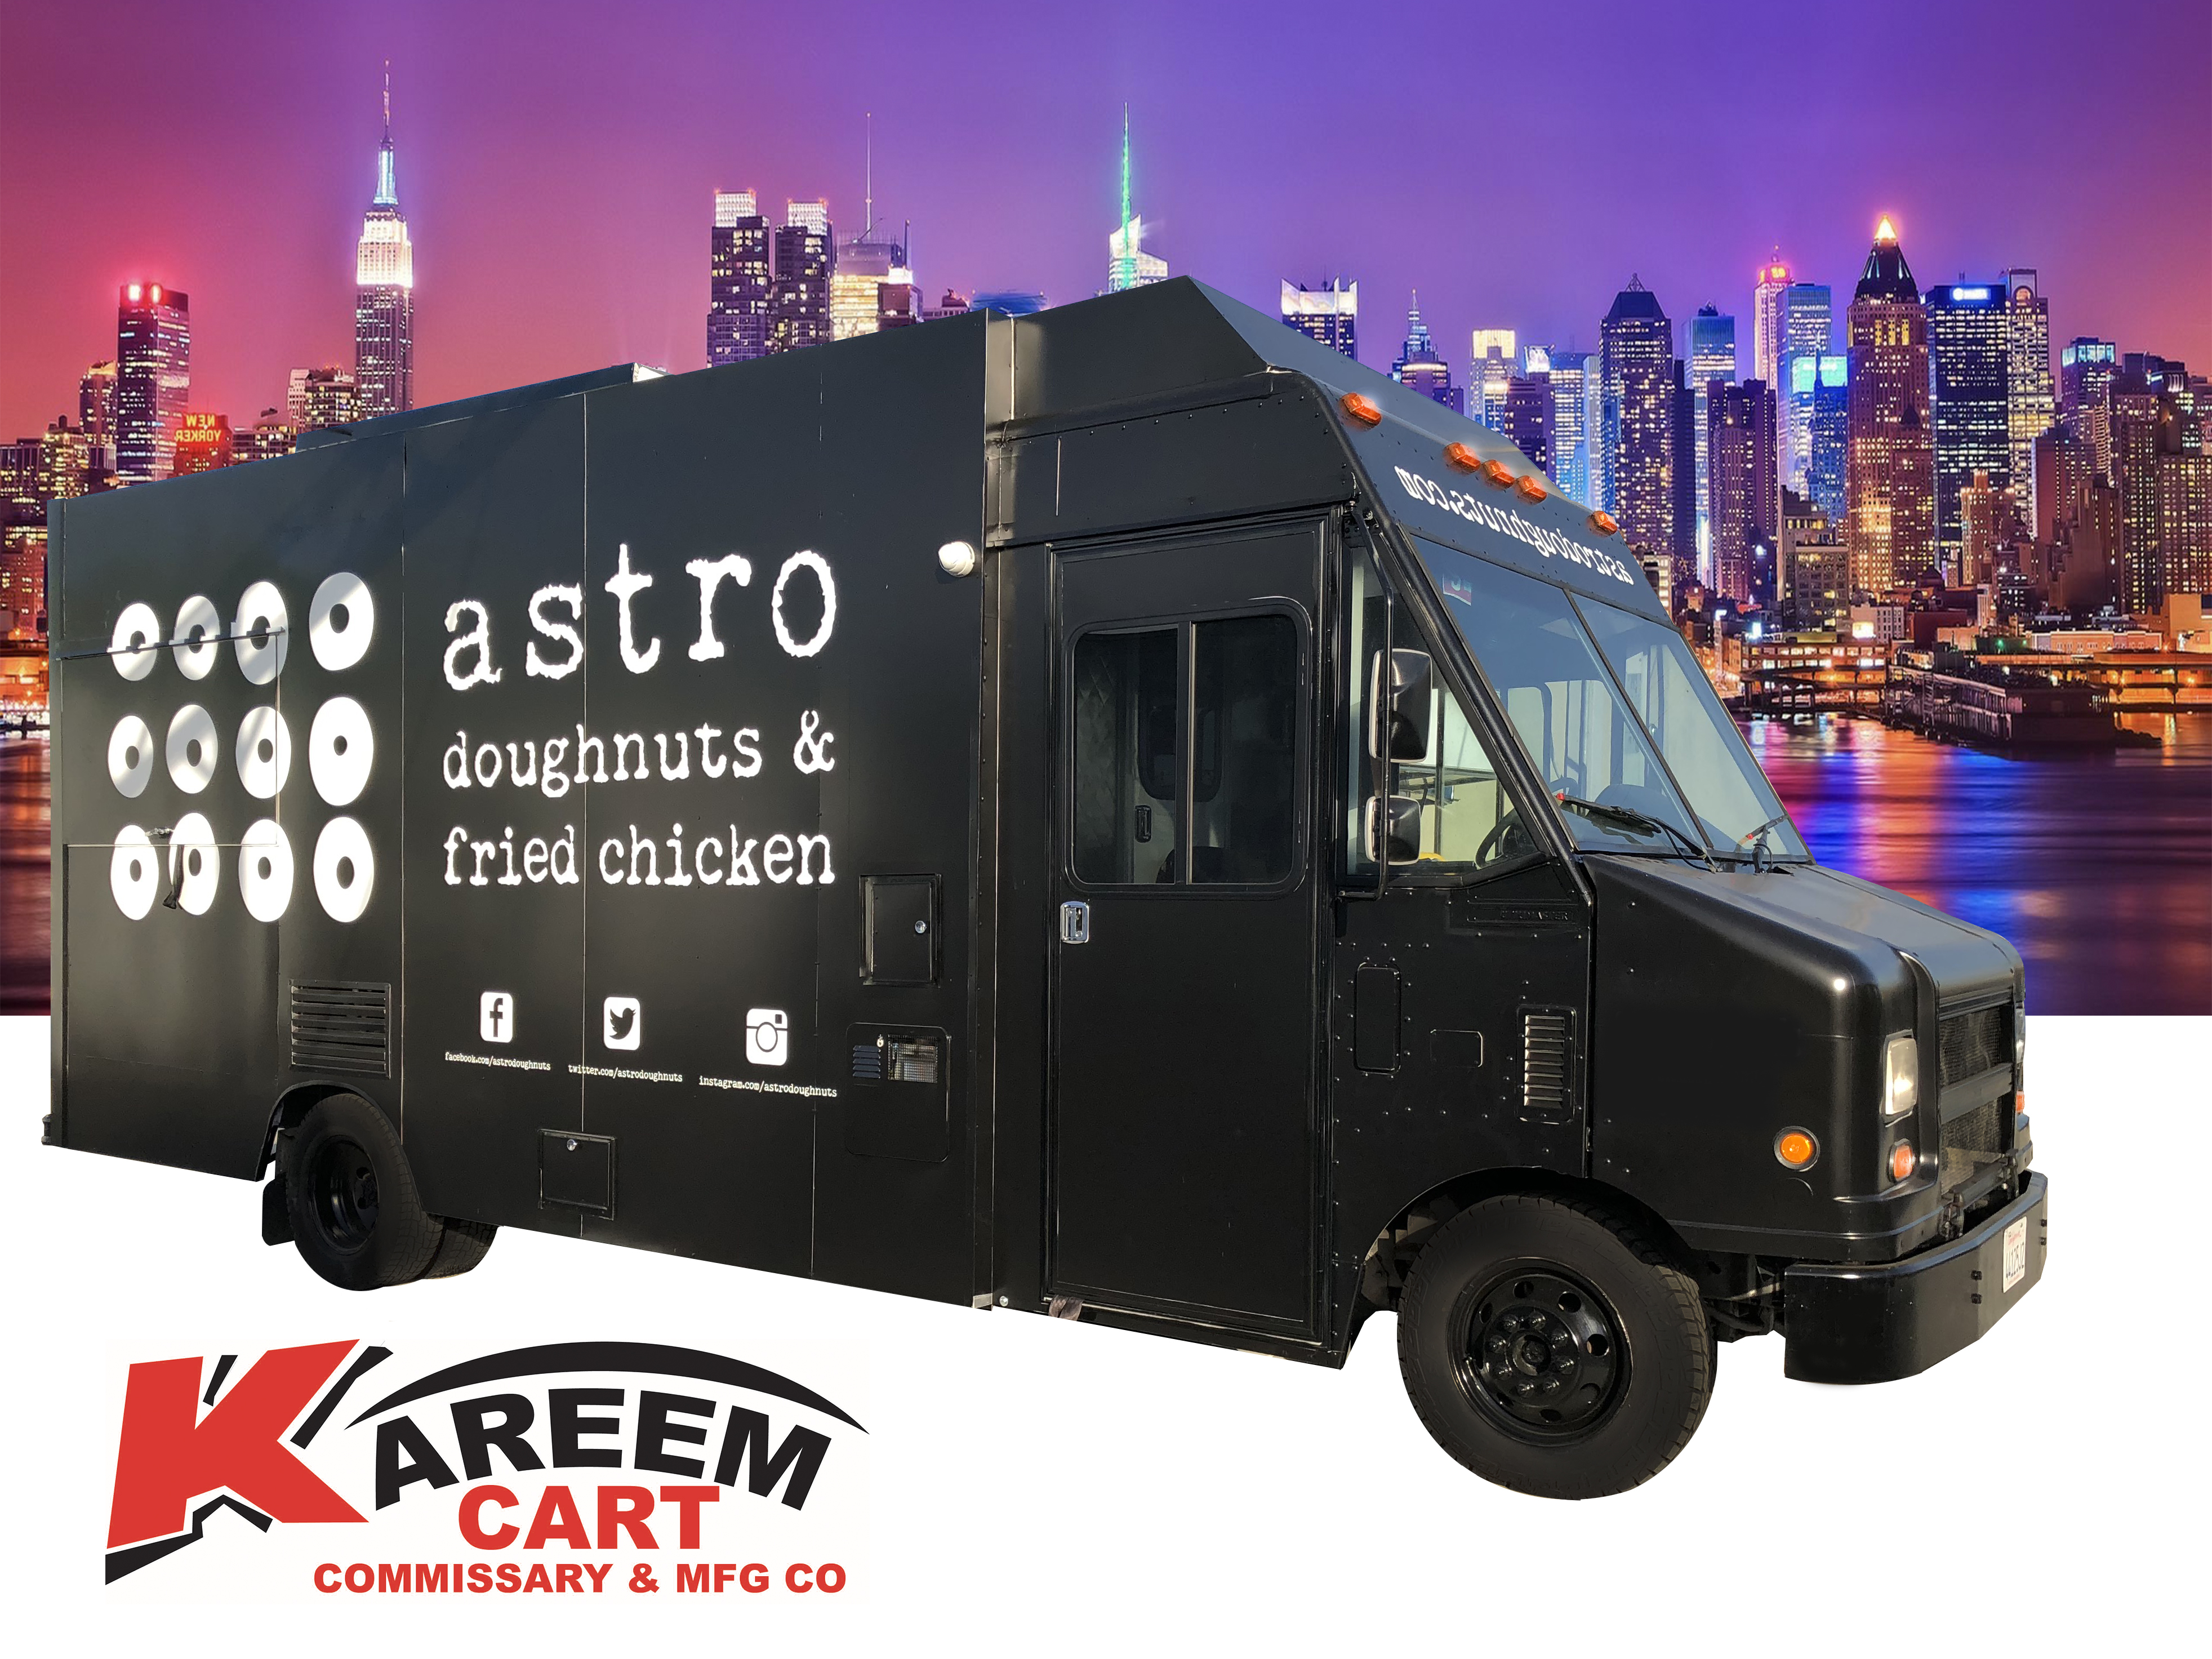 Fried Chicken Food Truck by Kareem Carts Manufacturing pany